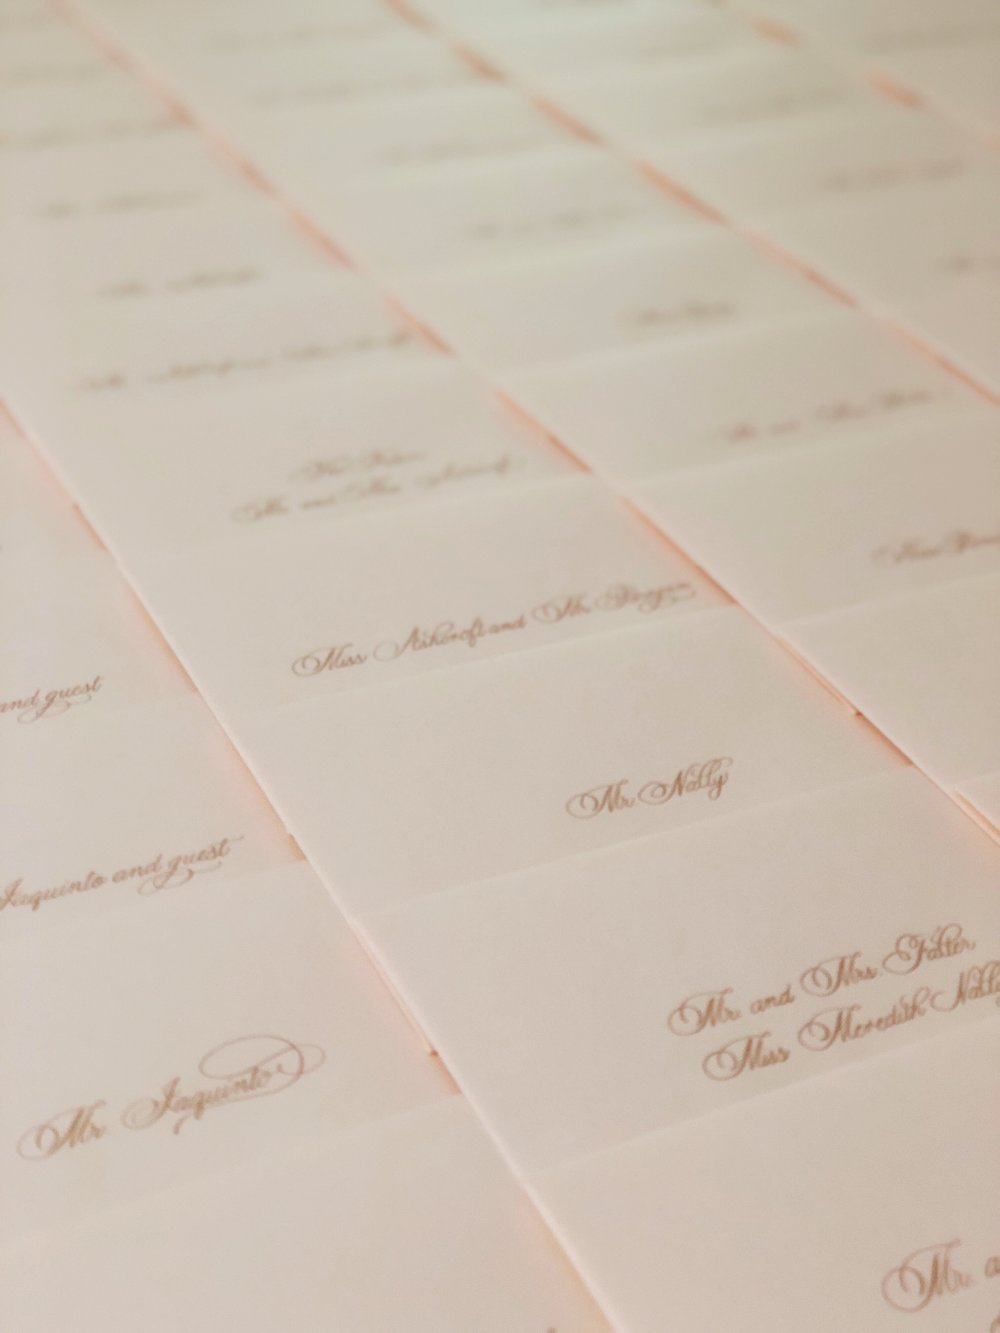 Central PA, York PA, JesSmith Designs, custom, wedding, invitations, bridal, Harrisburg, hanover, calligraphy, baltimore, wedding invitations, lancaster, gettysburg, 06-19 16.58.41.jpg